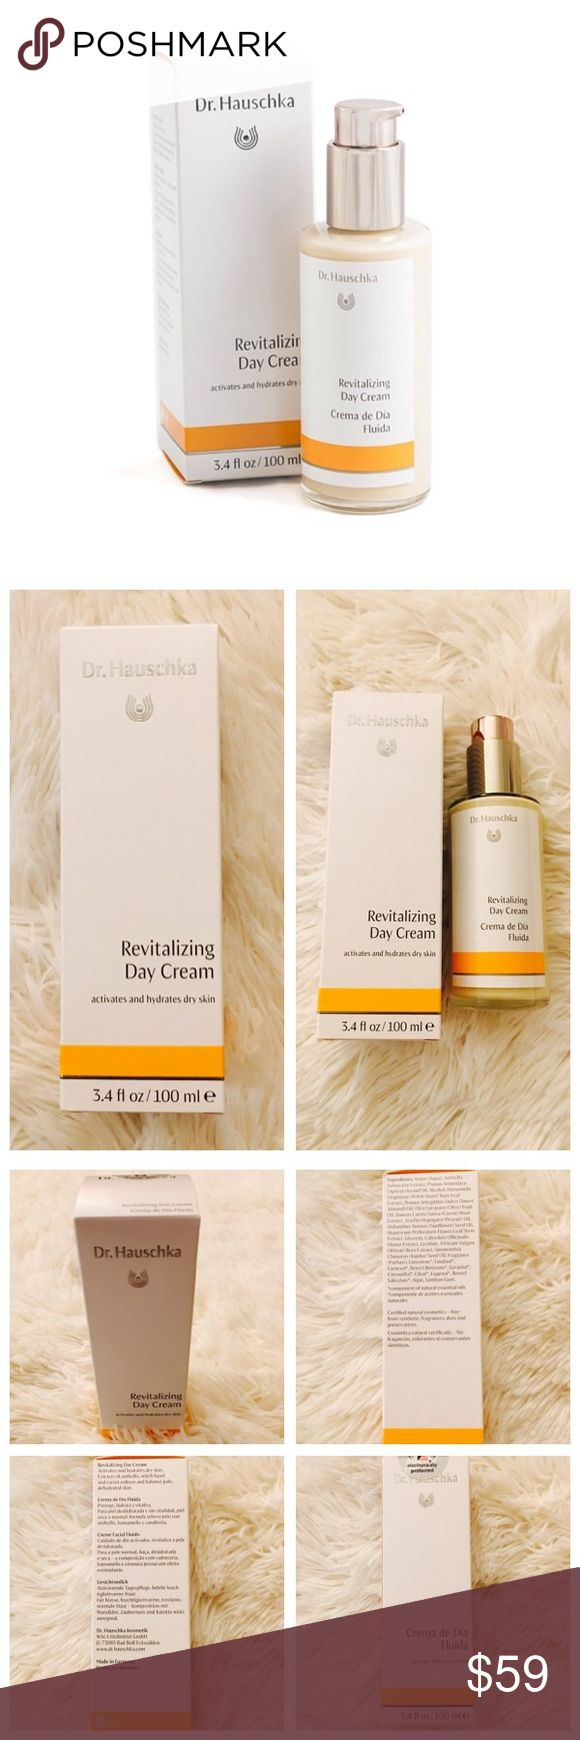 Dr. Hauschka Revitalizing Day Cream Brand new! Never opened! Activates and balances. For dry and normal skin. Light activating moisturizer regulates and balances the moisture content of skin. Enlivens pale skin and absorbs quickly. Skin feels energized and healthy! Dr. Hauschka Makeup